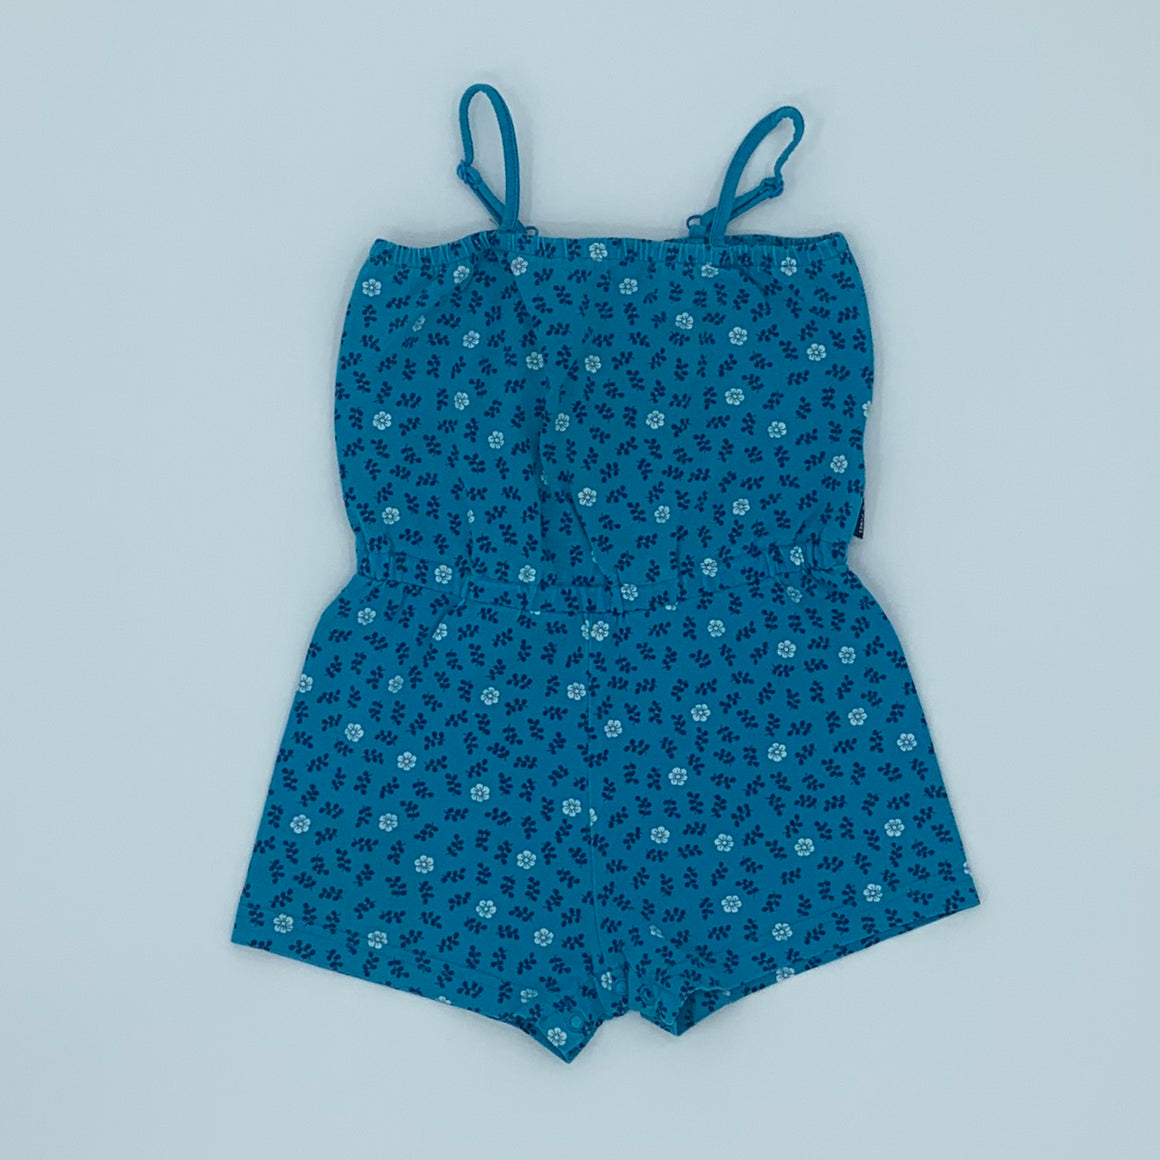 Gently Worn Polarn O Pyret blue flower playsuit size 18-24 months